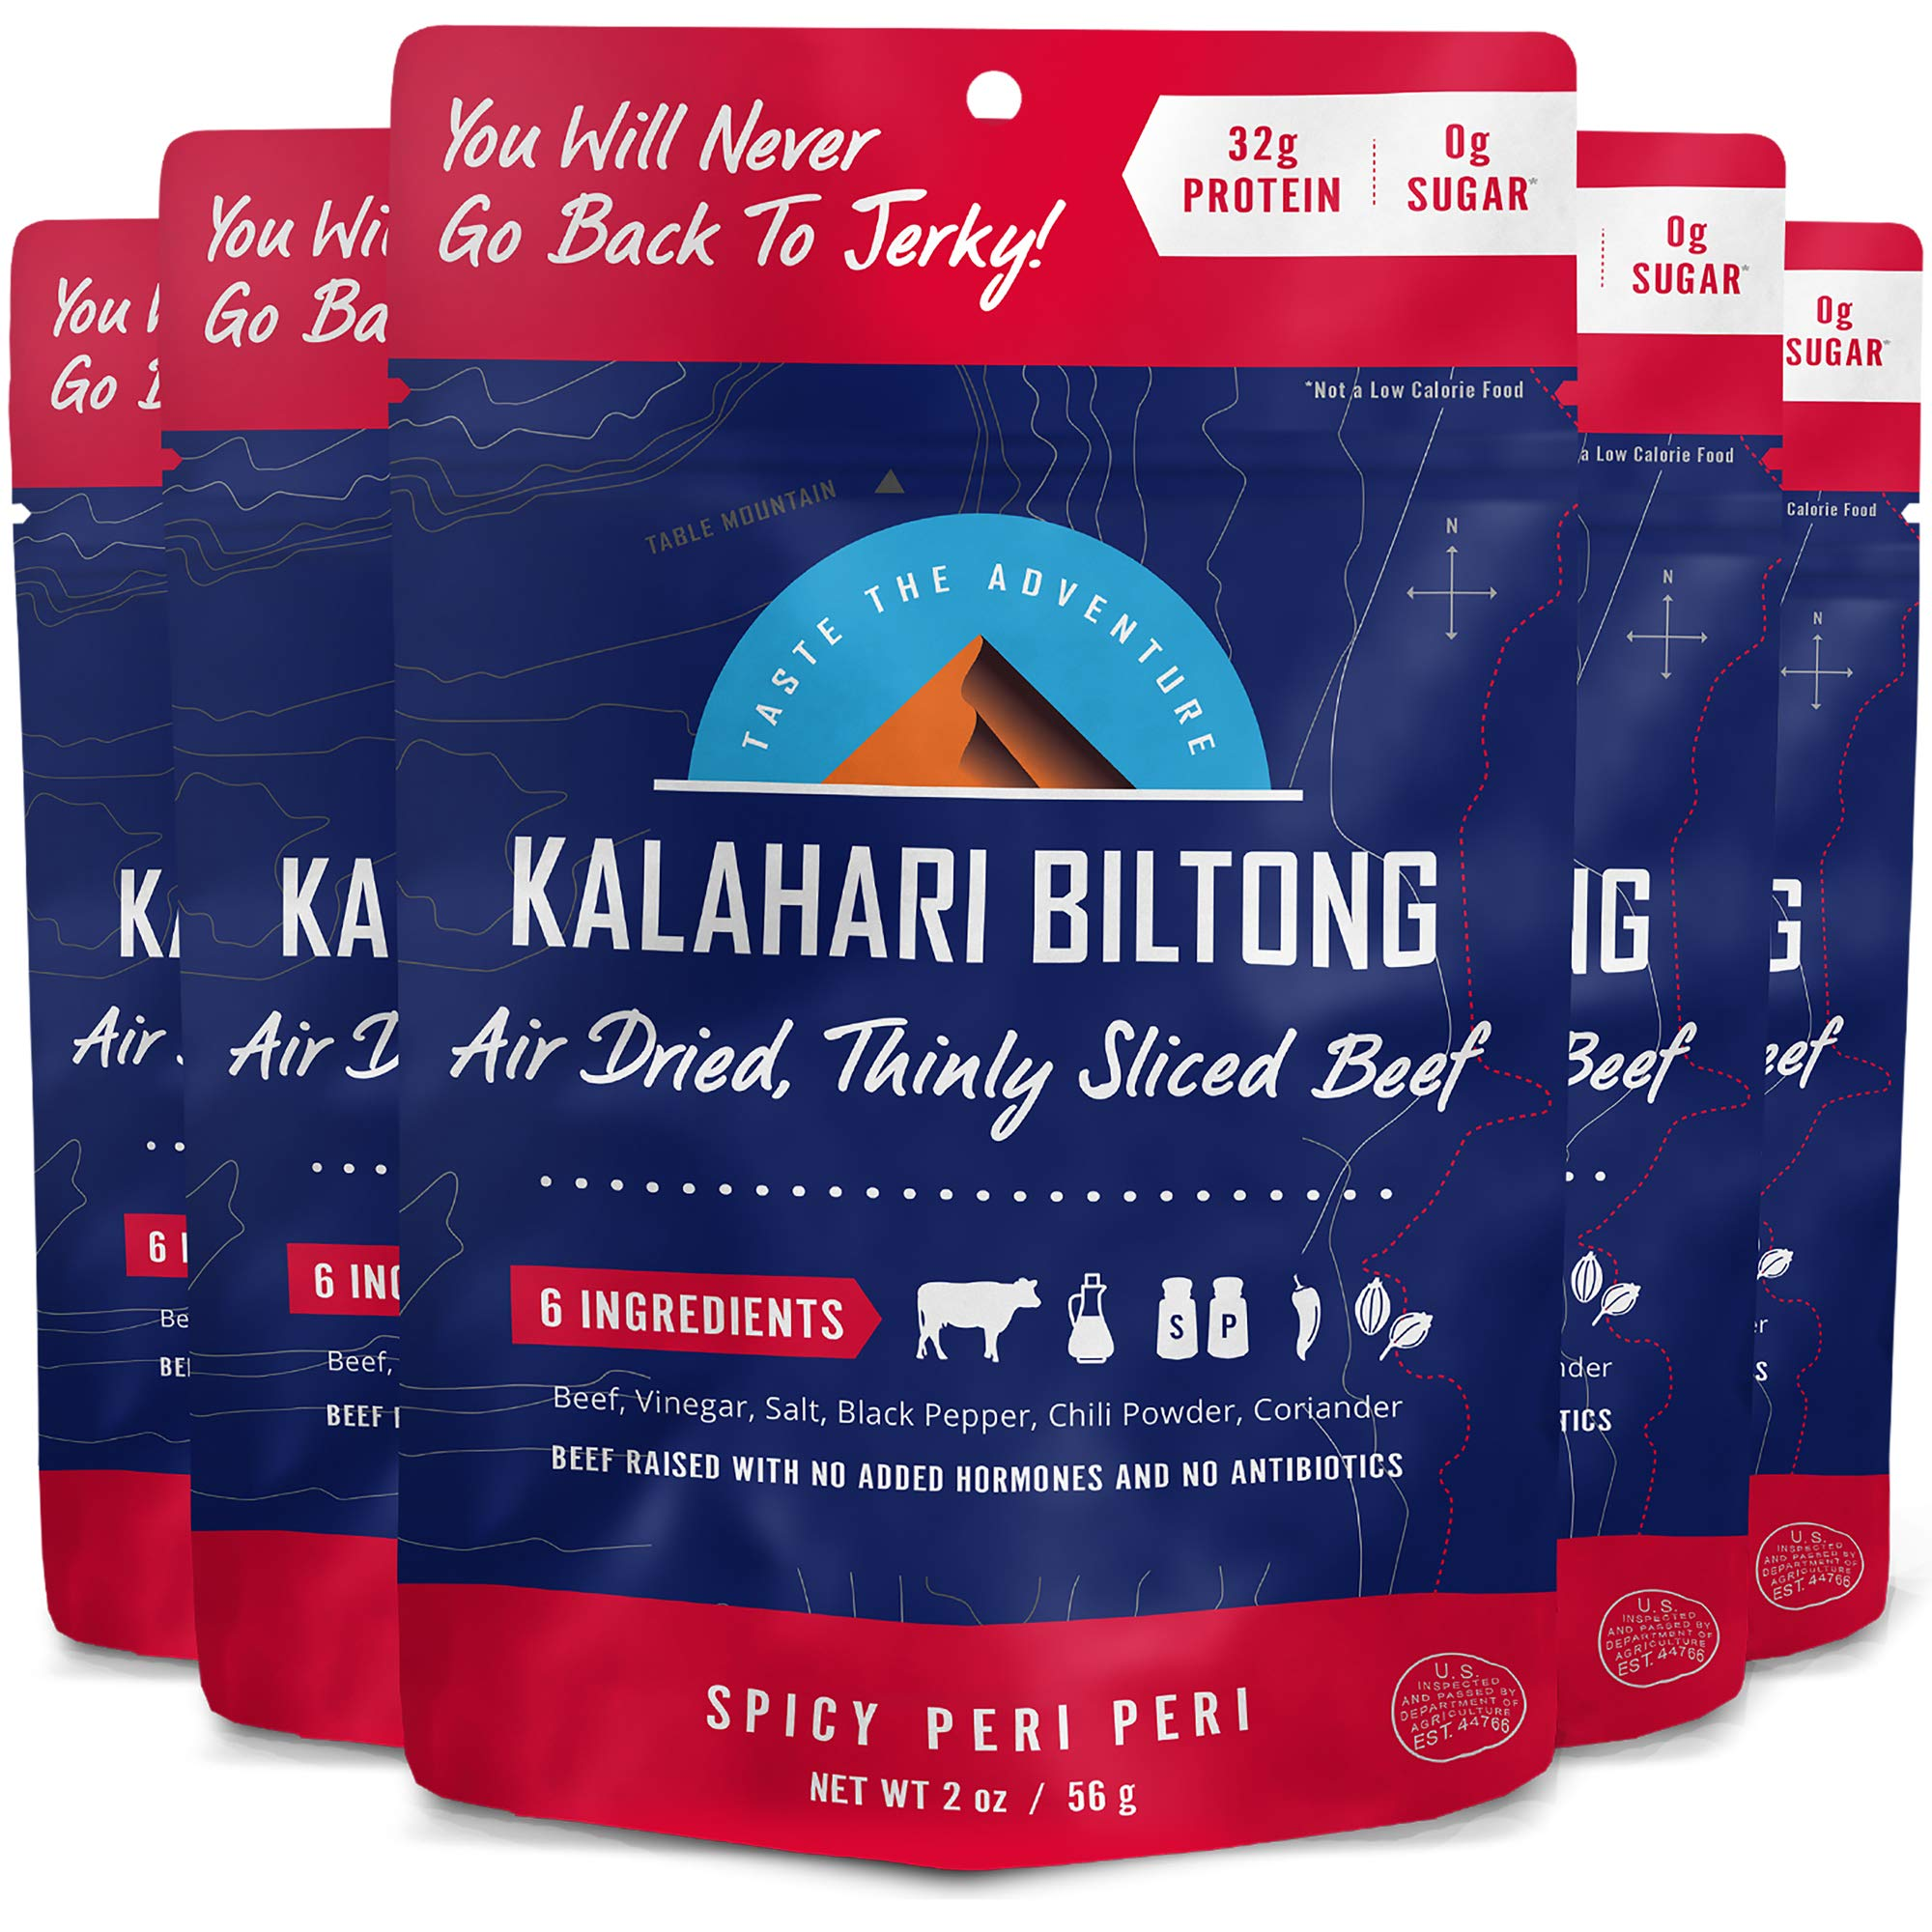 Kalahari Biltong | Air-Dried Thinly Sliced Beef | Spicy Peri Peri | 2oz (Pack of 5) | Zero Sugar | Keto & Paleo | Gluten Free | Better than Jerky